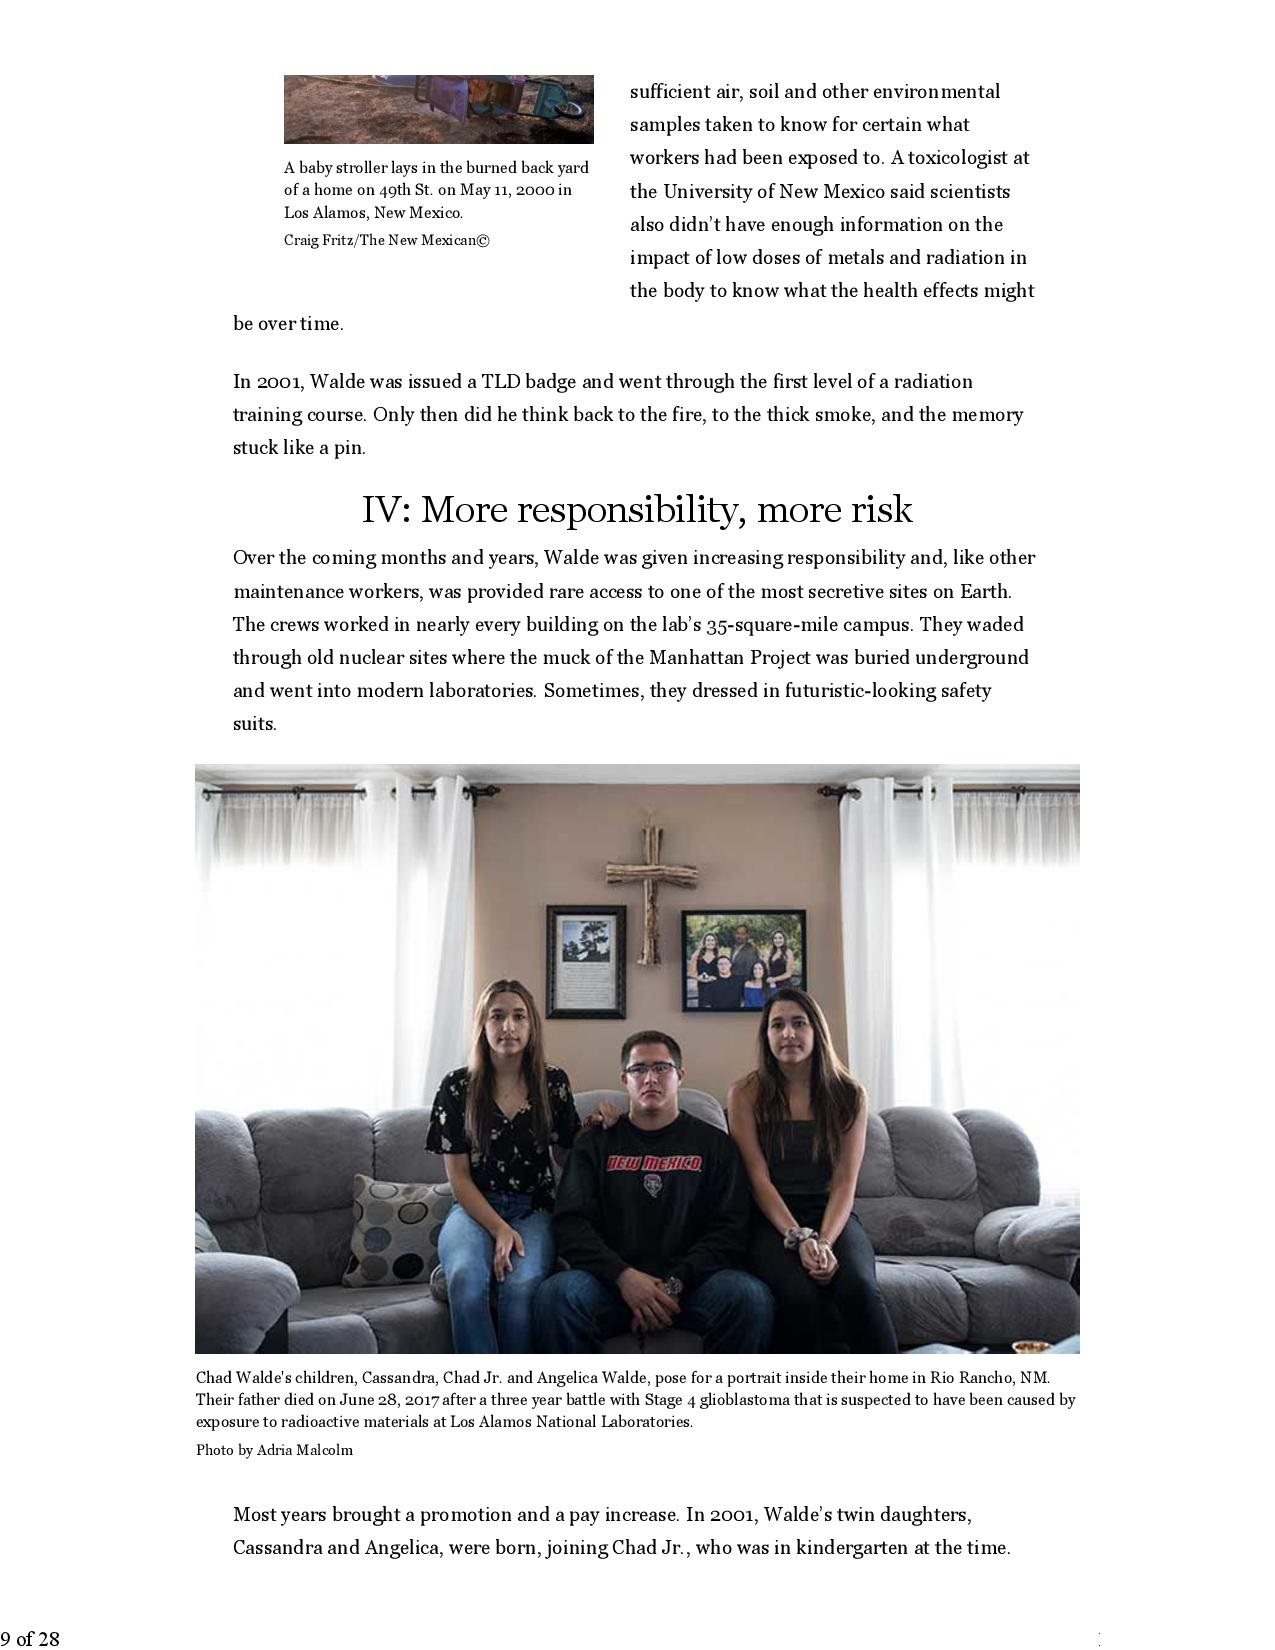 The life and death of Chad Walde - Local News-page-009